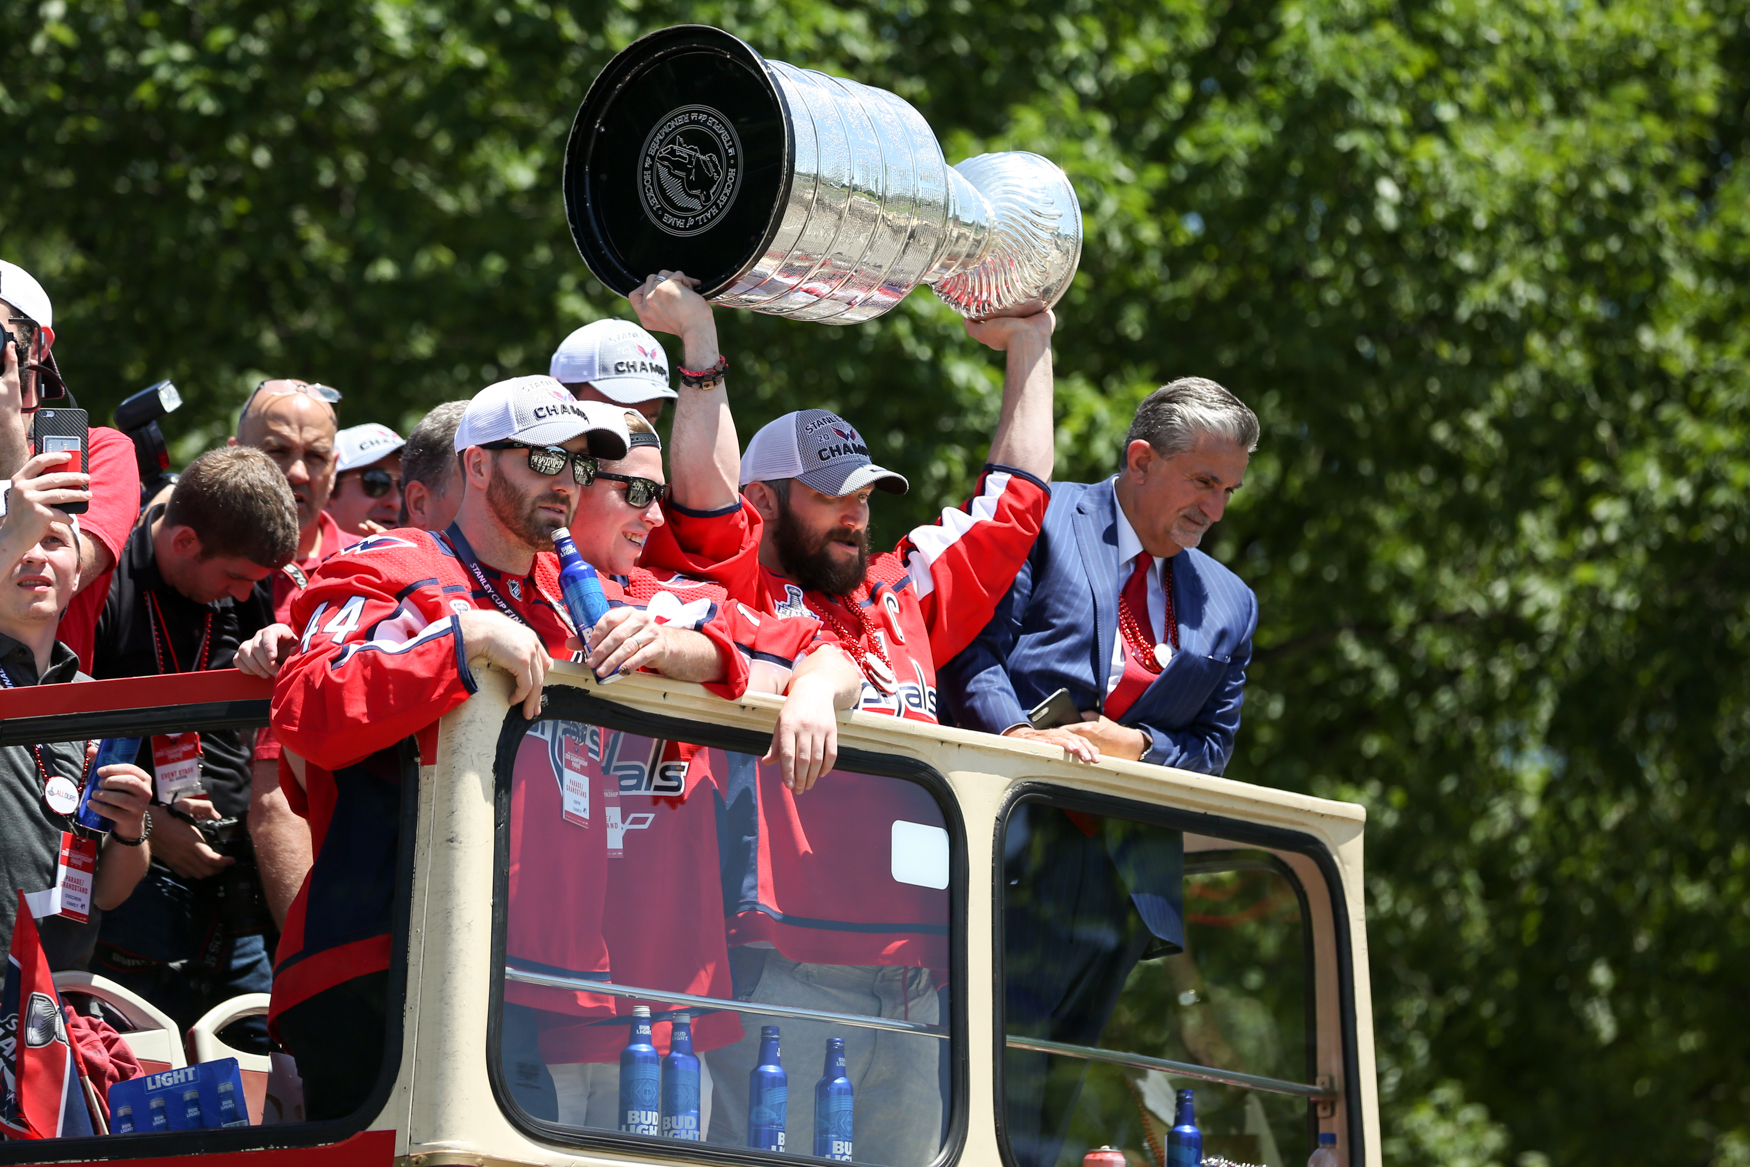 Alex Ovechkin hoists the cup over his head, alongside teammates Brooks Orpik and Nicklas Backstrom and Caps owner Ted Leonsis. (Amanda Andrade-Rhoades/DC Refined)